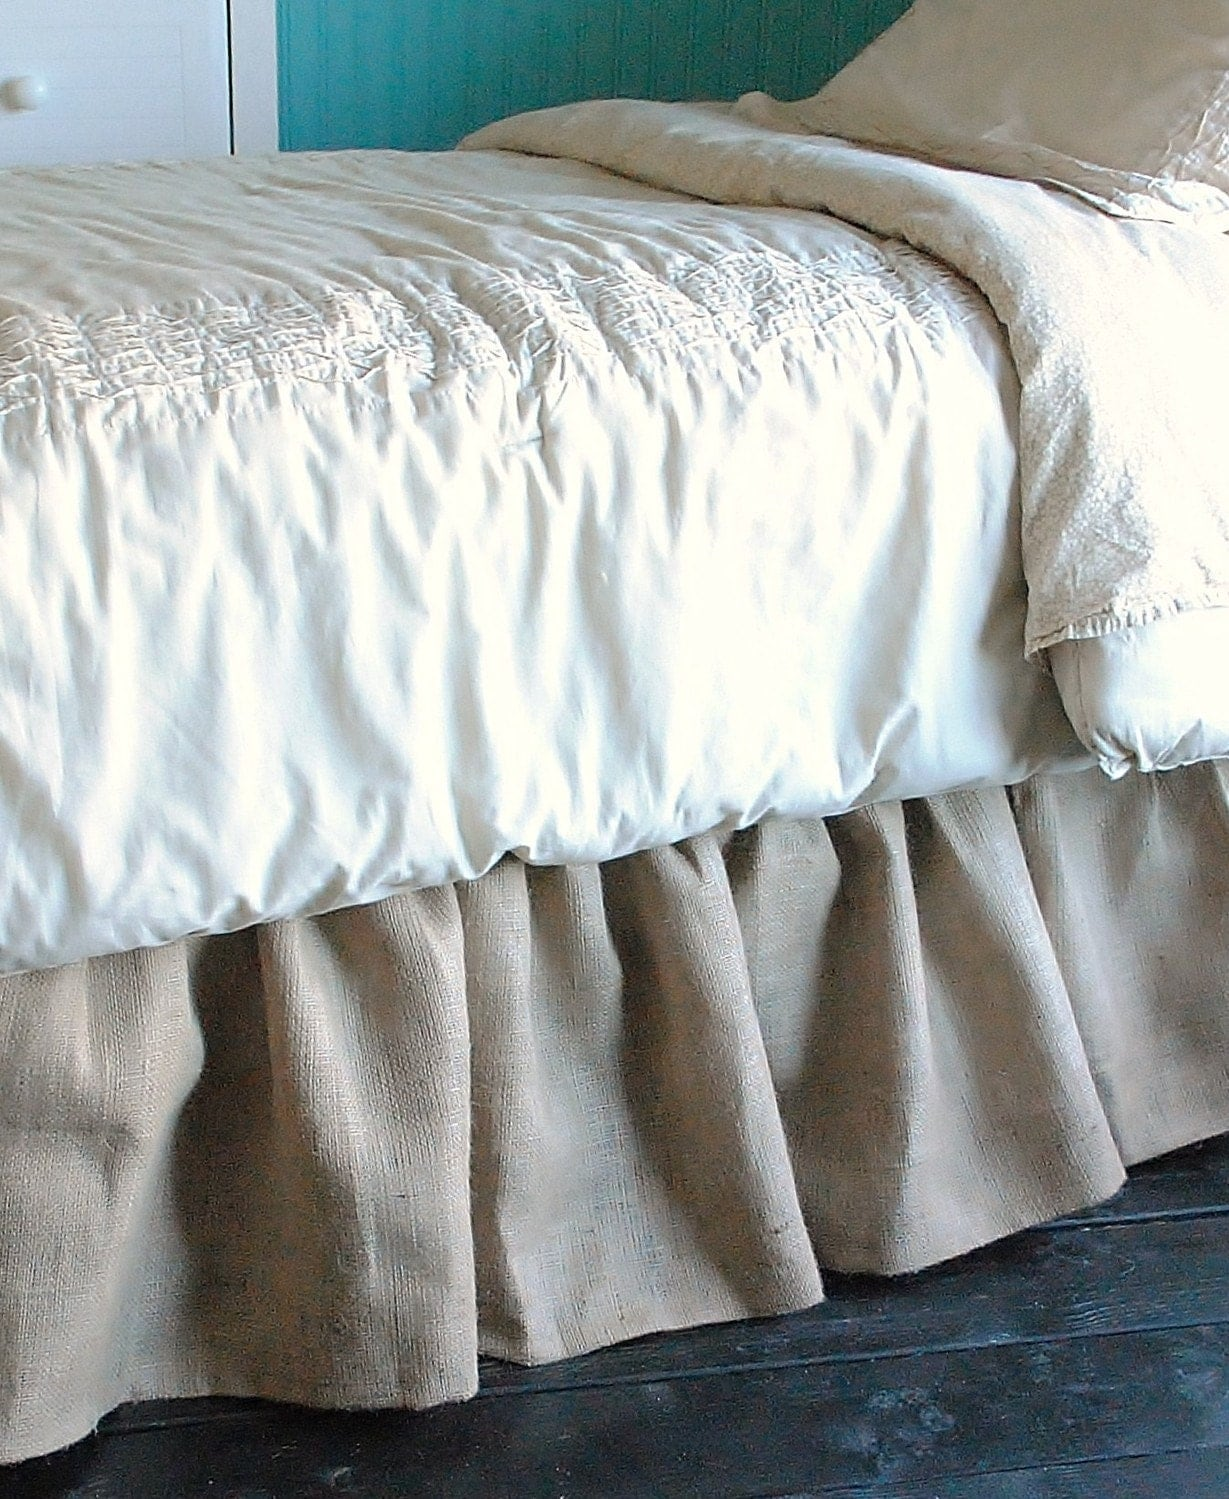 Buy low price, high quality bedskirt queen with worldwide shipping on forex-trade1.ga